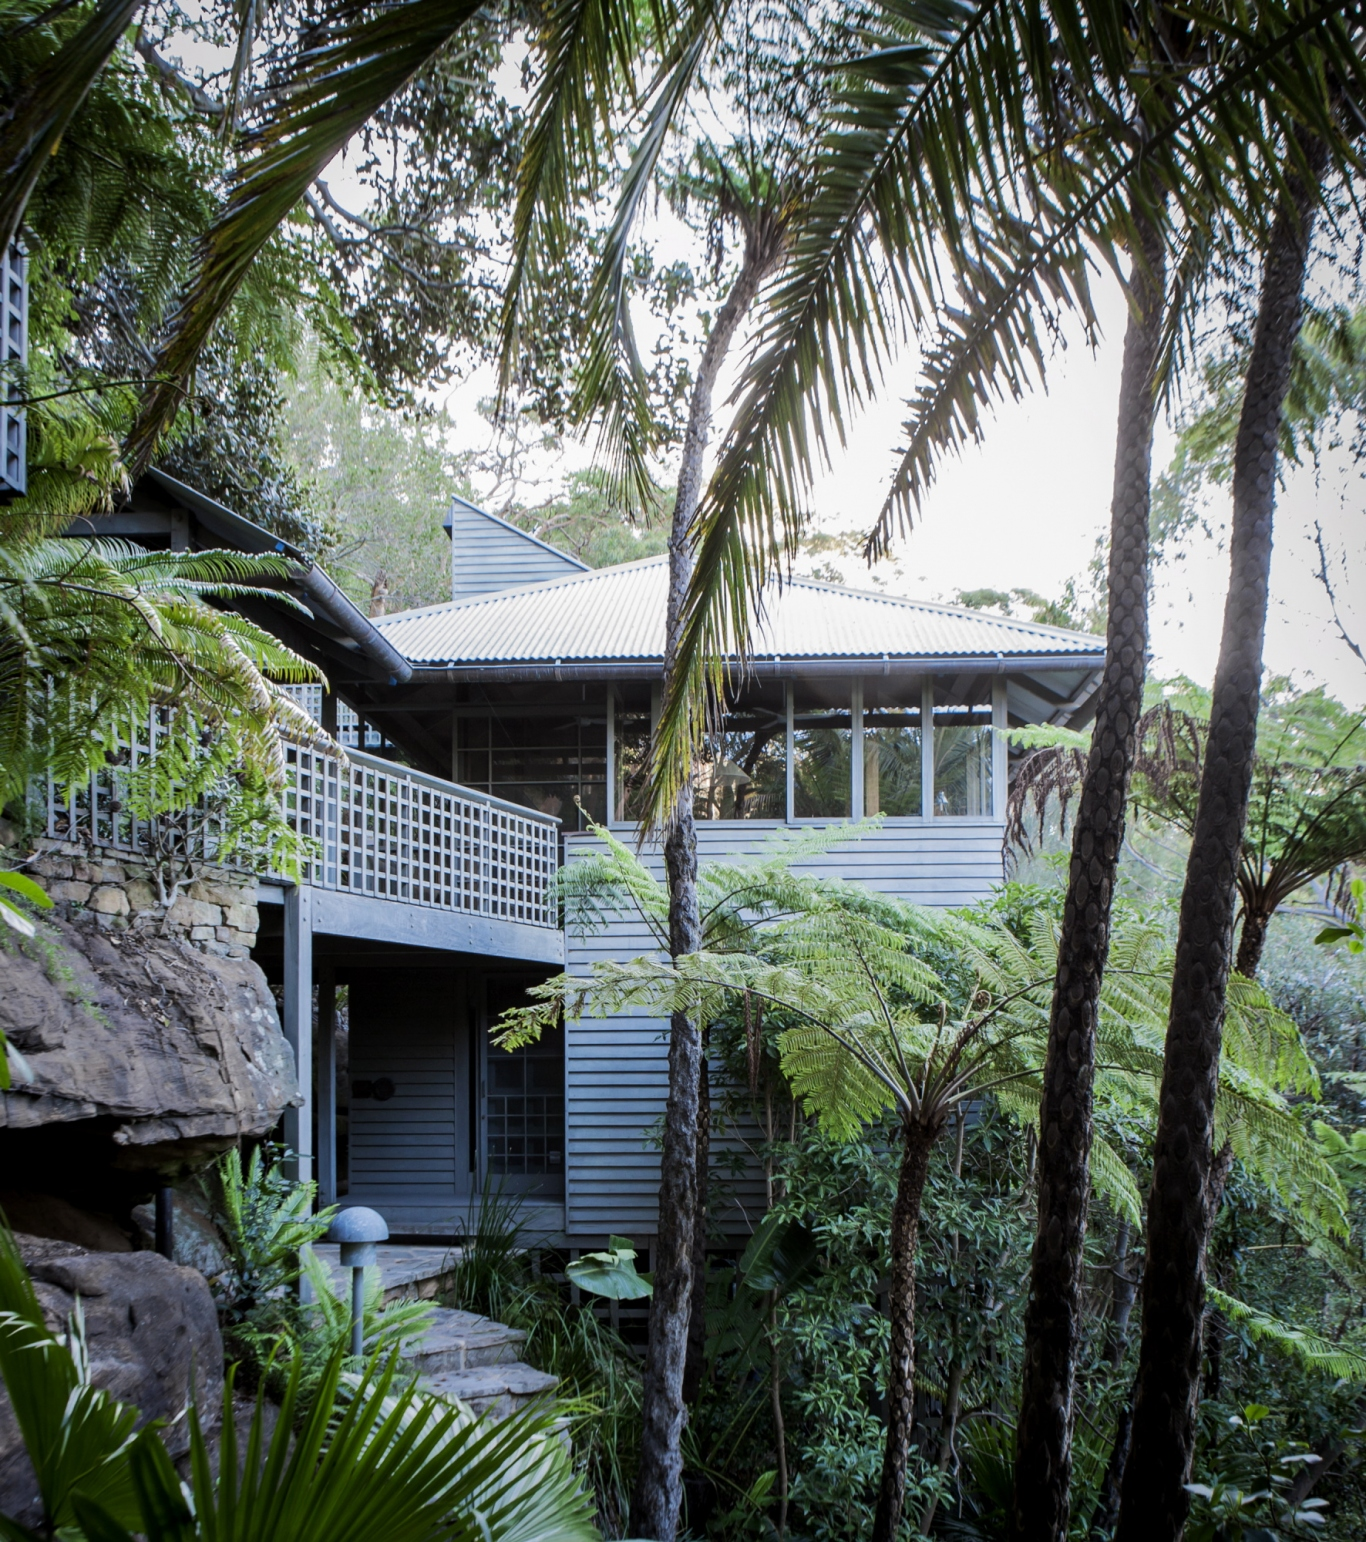 The palm beach house sydney living museums for Beach house designs sydney